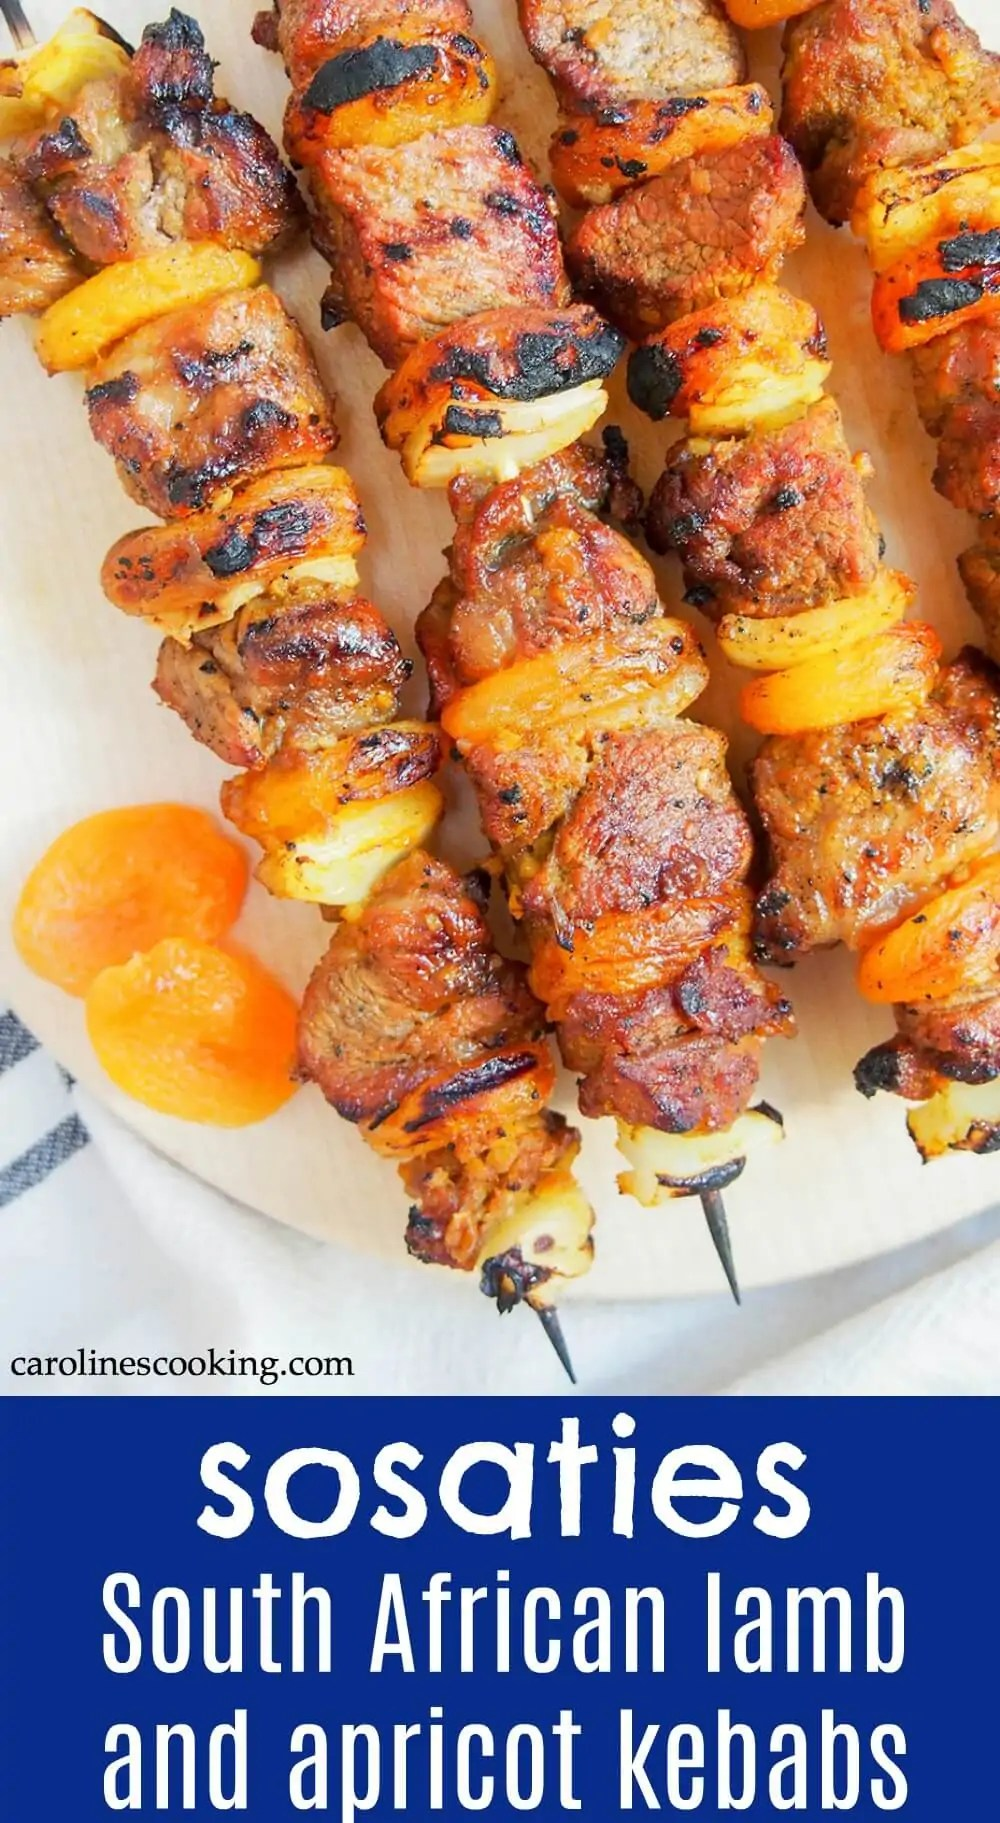 Sosaties are a South African braai (BBQ) classic - the apricot jam-curry marinade on these skewers might sound unusual, but it's so easy and delicious! Here they are made with lamb, but you can also make them with chicken or beef. #lambkebabs #grilledllamb #grillrecipe #marinatedmeat